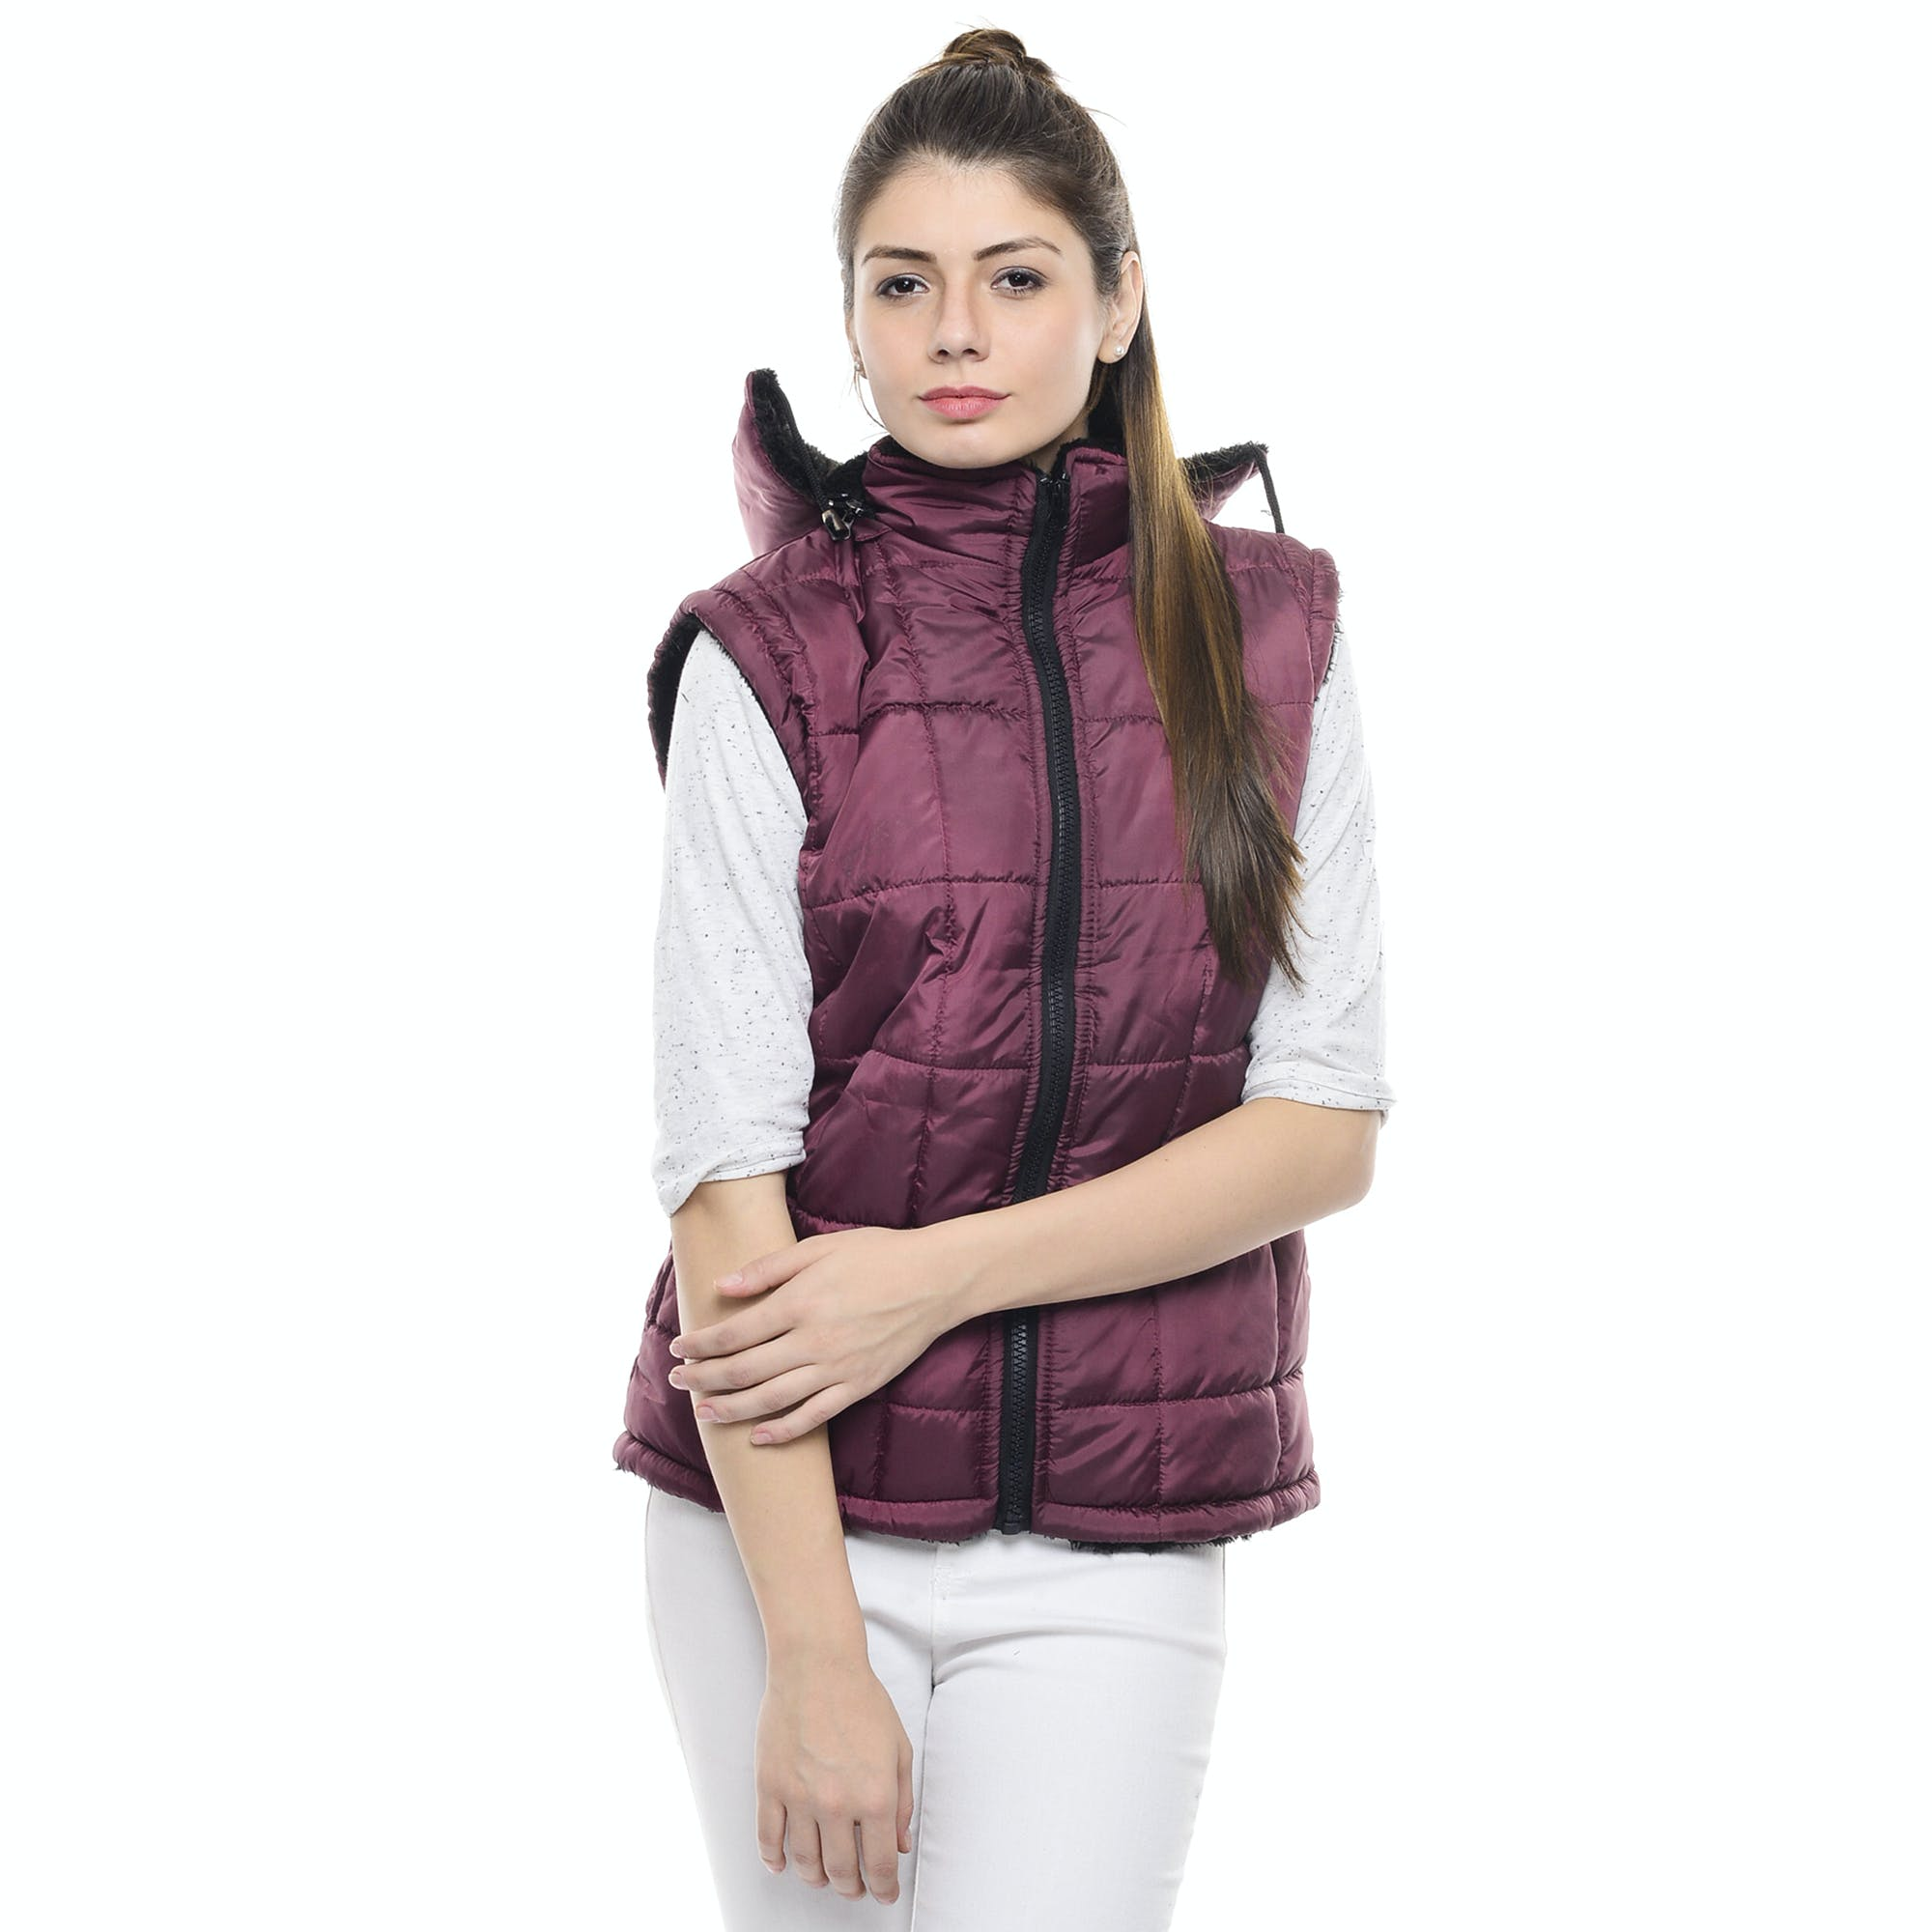 Woman in Pink Zippered Bubble Vest and White Jeans